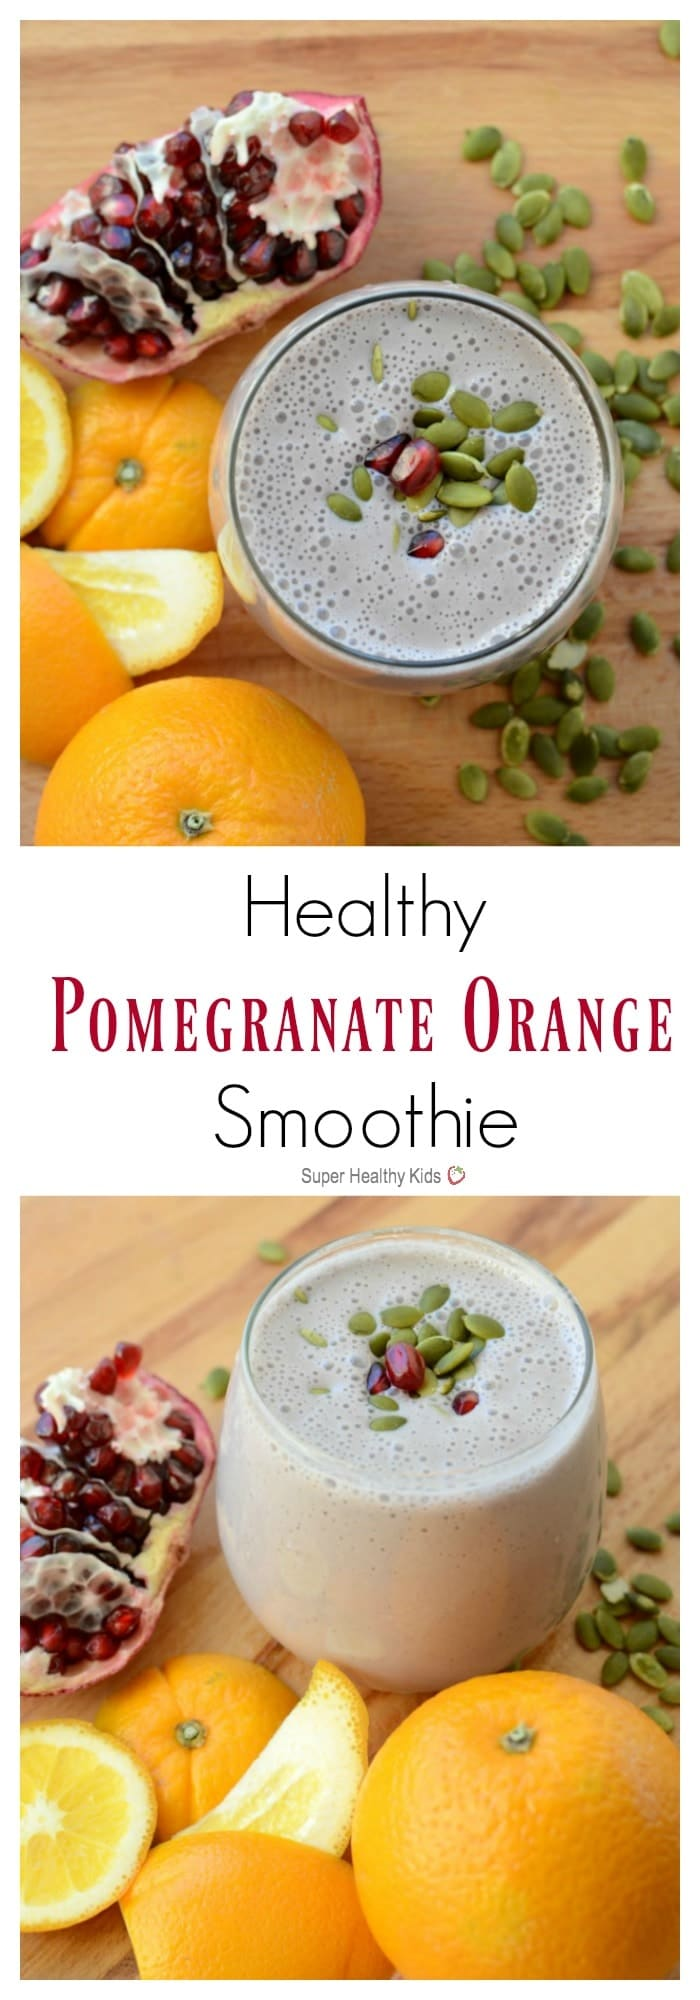 Healthy Pomegranate Orange Smoothie. Citrusy, sweet and amazingly refreshing! http://www.superhealthykids.com/healthy-pomegranate-orange-smoothie-january/